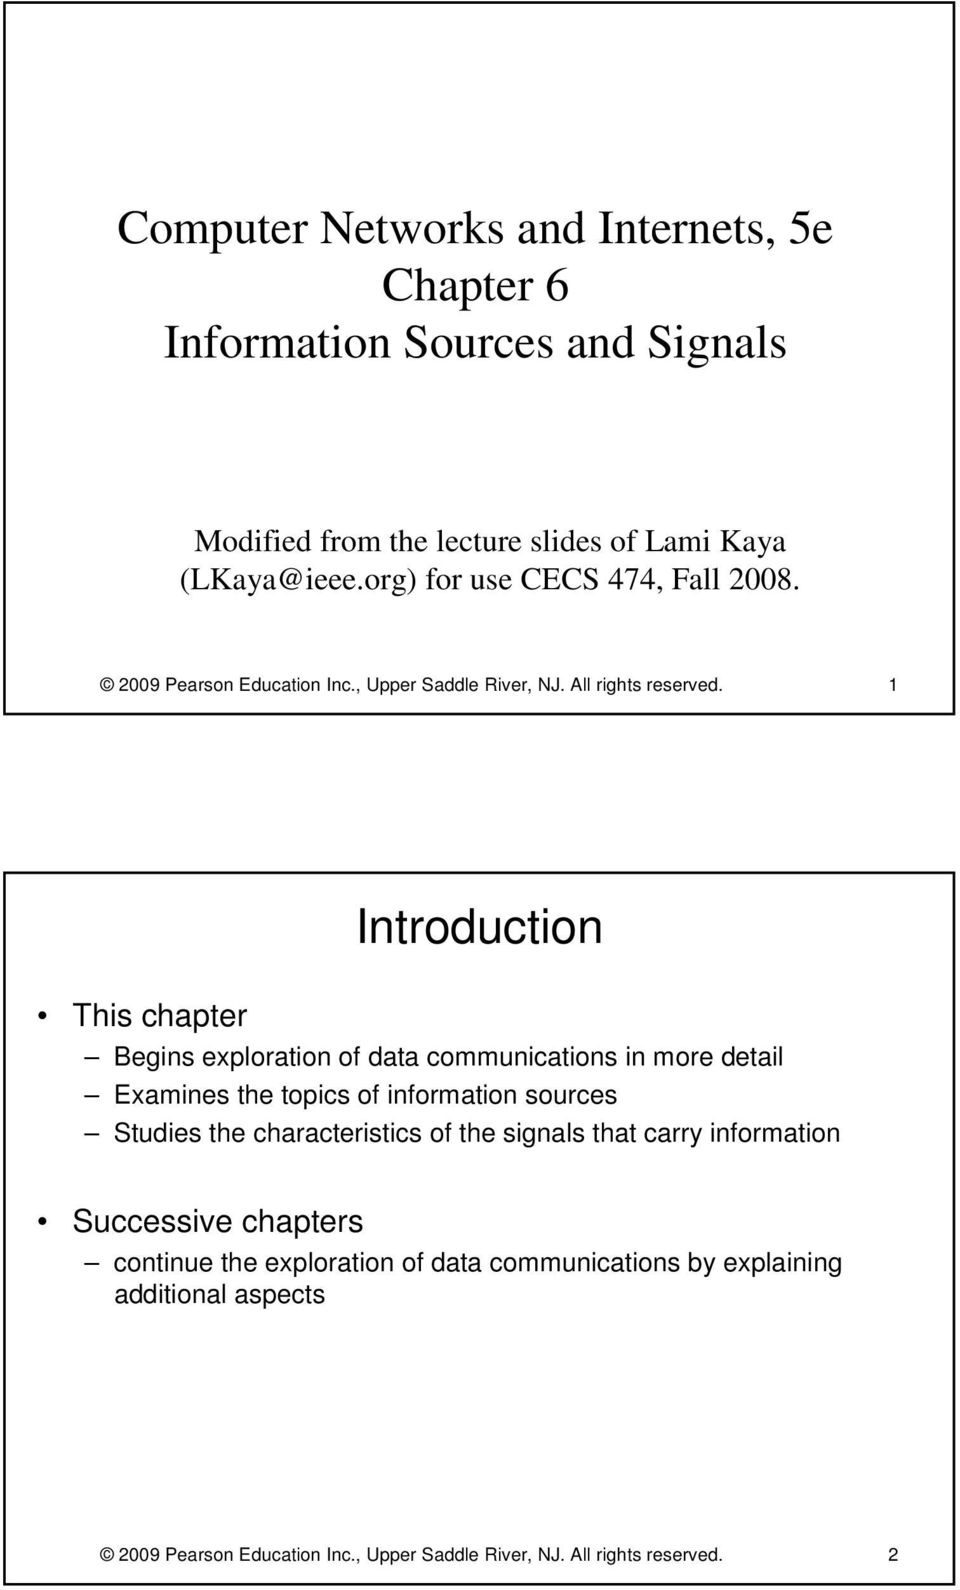 1 Introduction This chapter Begins exploration of data communications in more detail Examines the topics of information sources Studies the